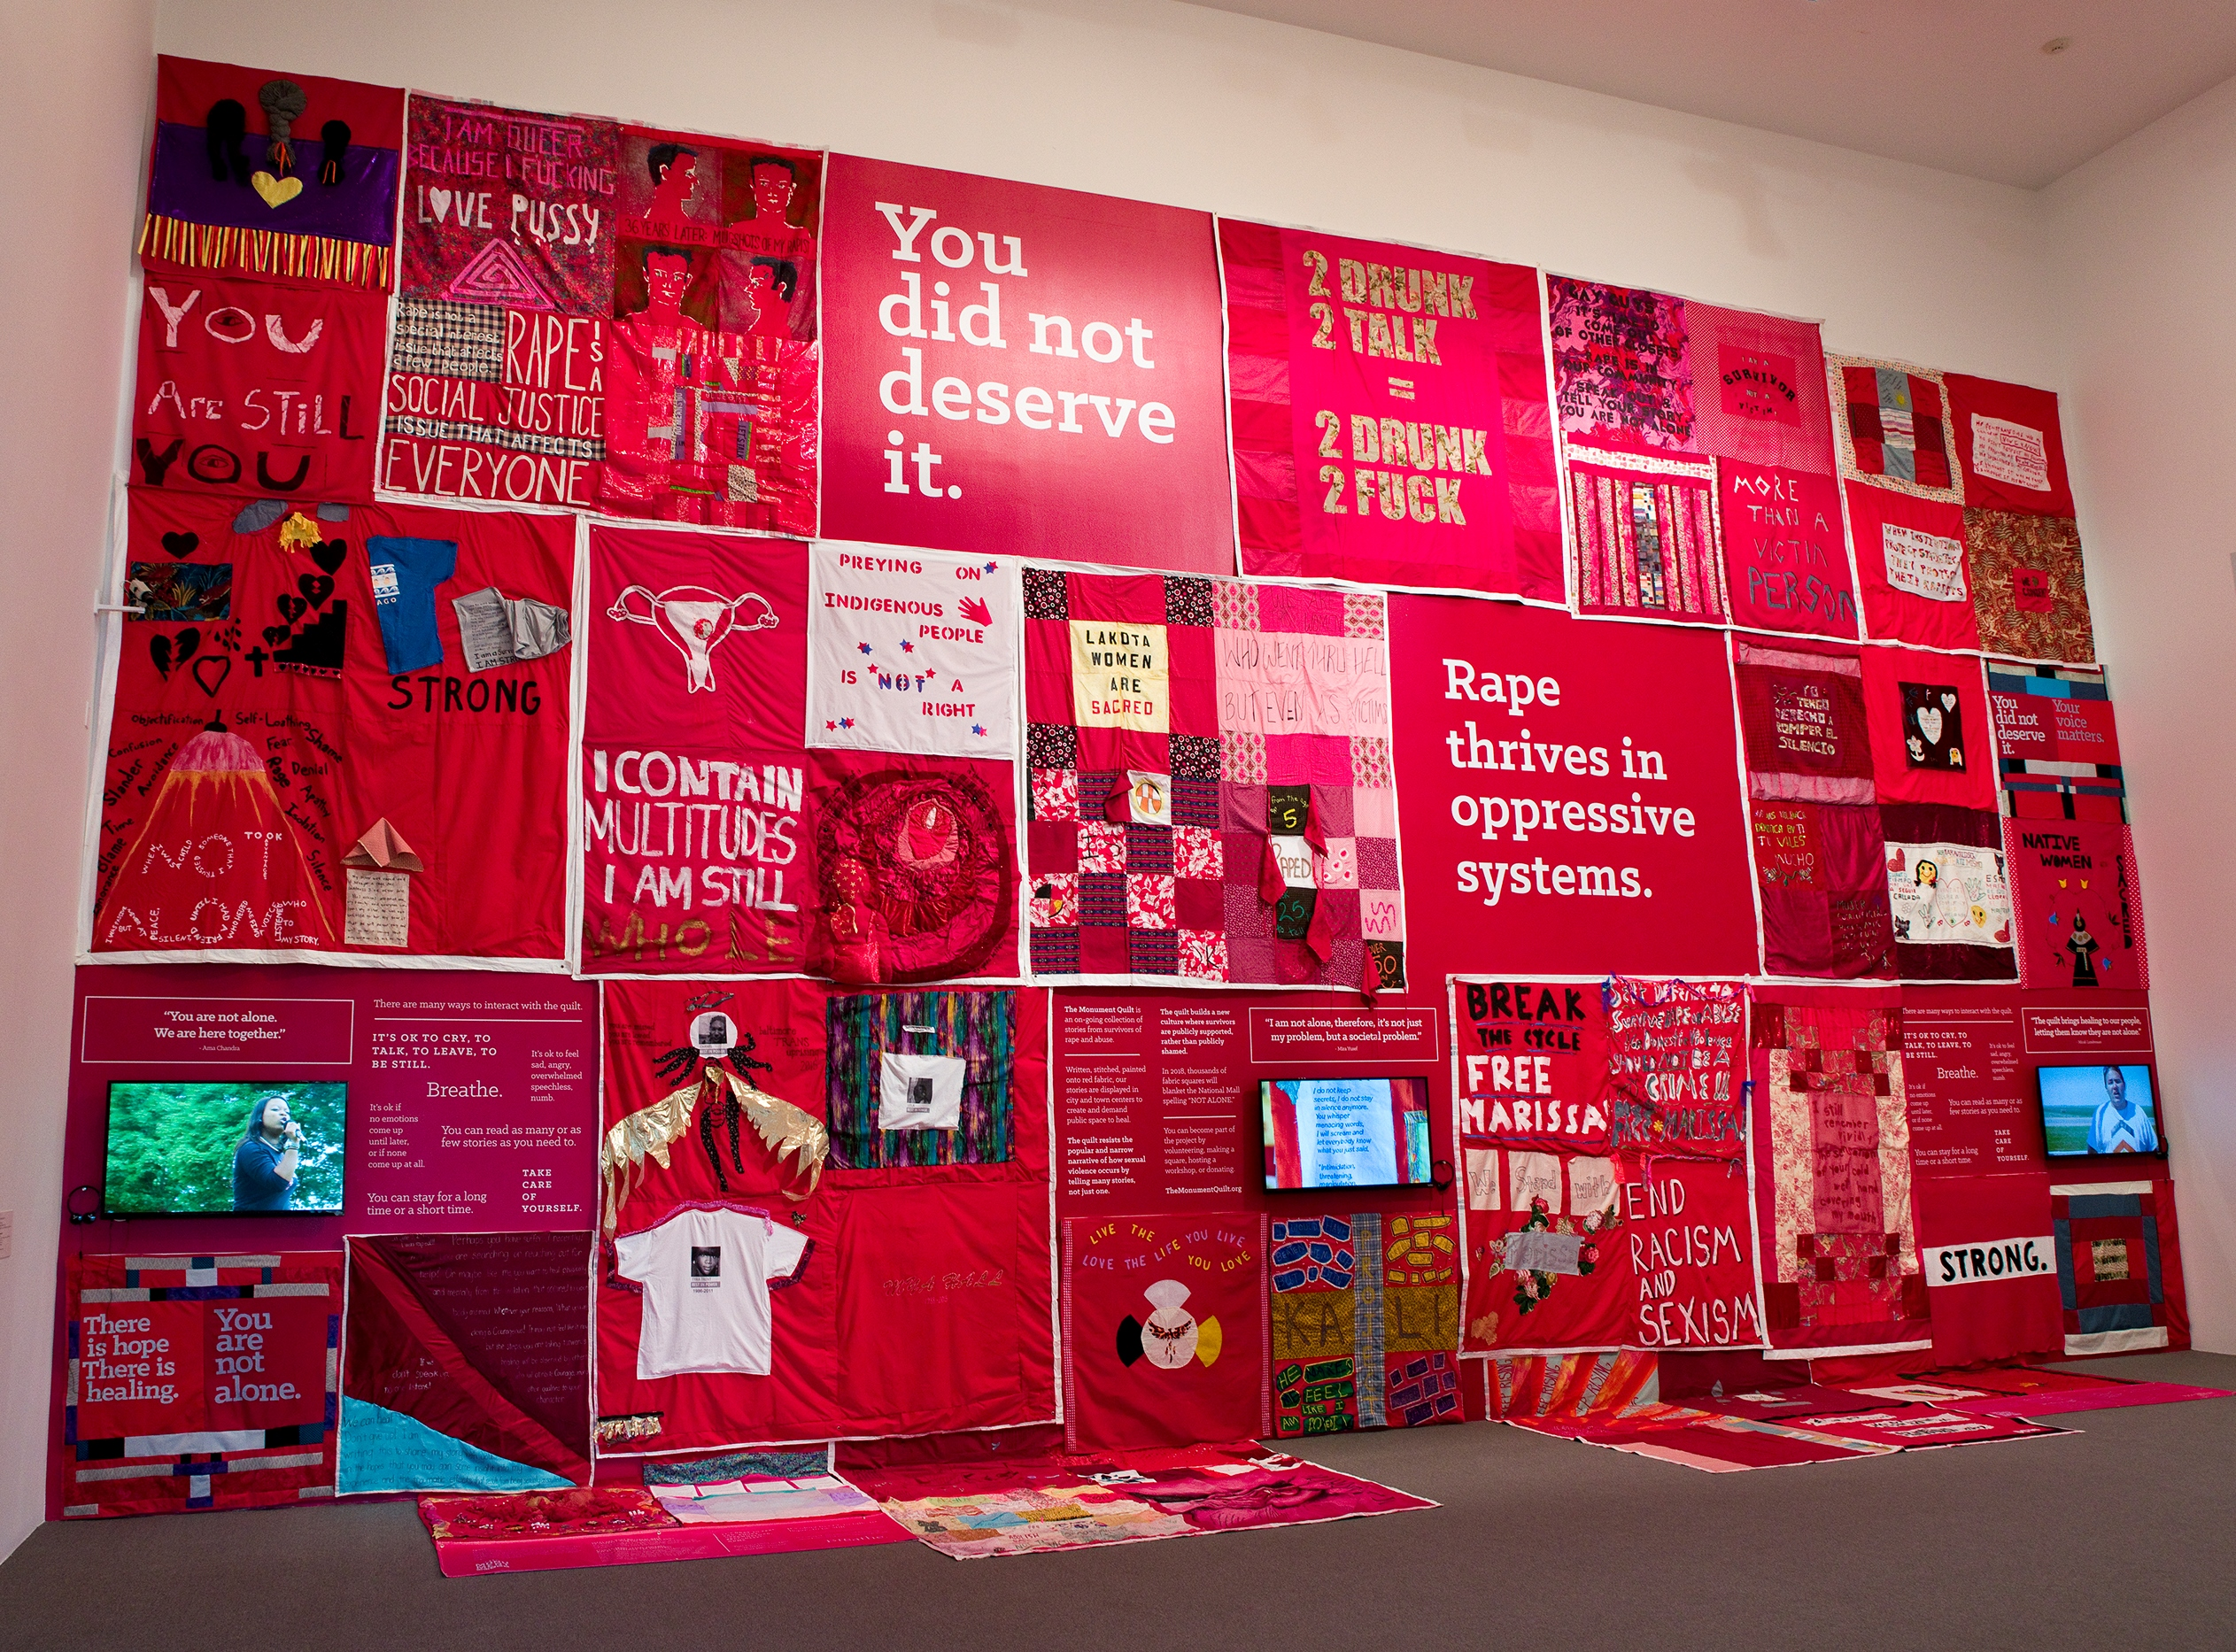 FORCE: Upsetting Rape Culture Co-Founded by: Hannah Brancato and Rebecca Nagle. Installation view of The Monument Quilt. 2013–ongoing. Courtesy of FORCE: Upsetting Rape Culture. Photo by Mitro Hood.